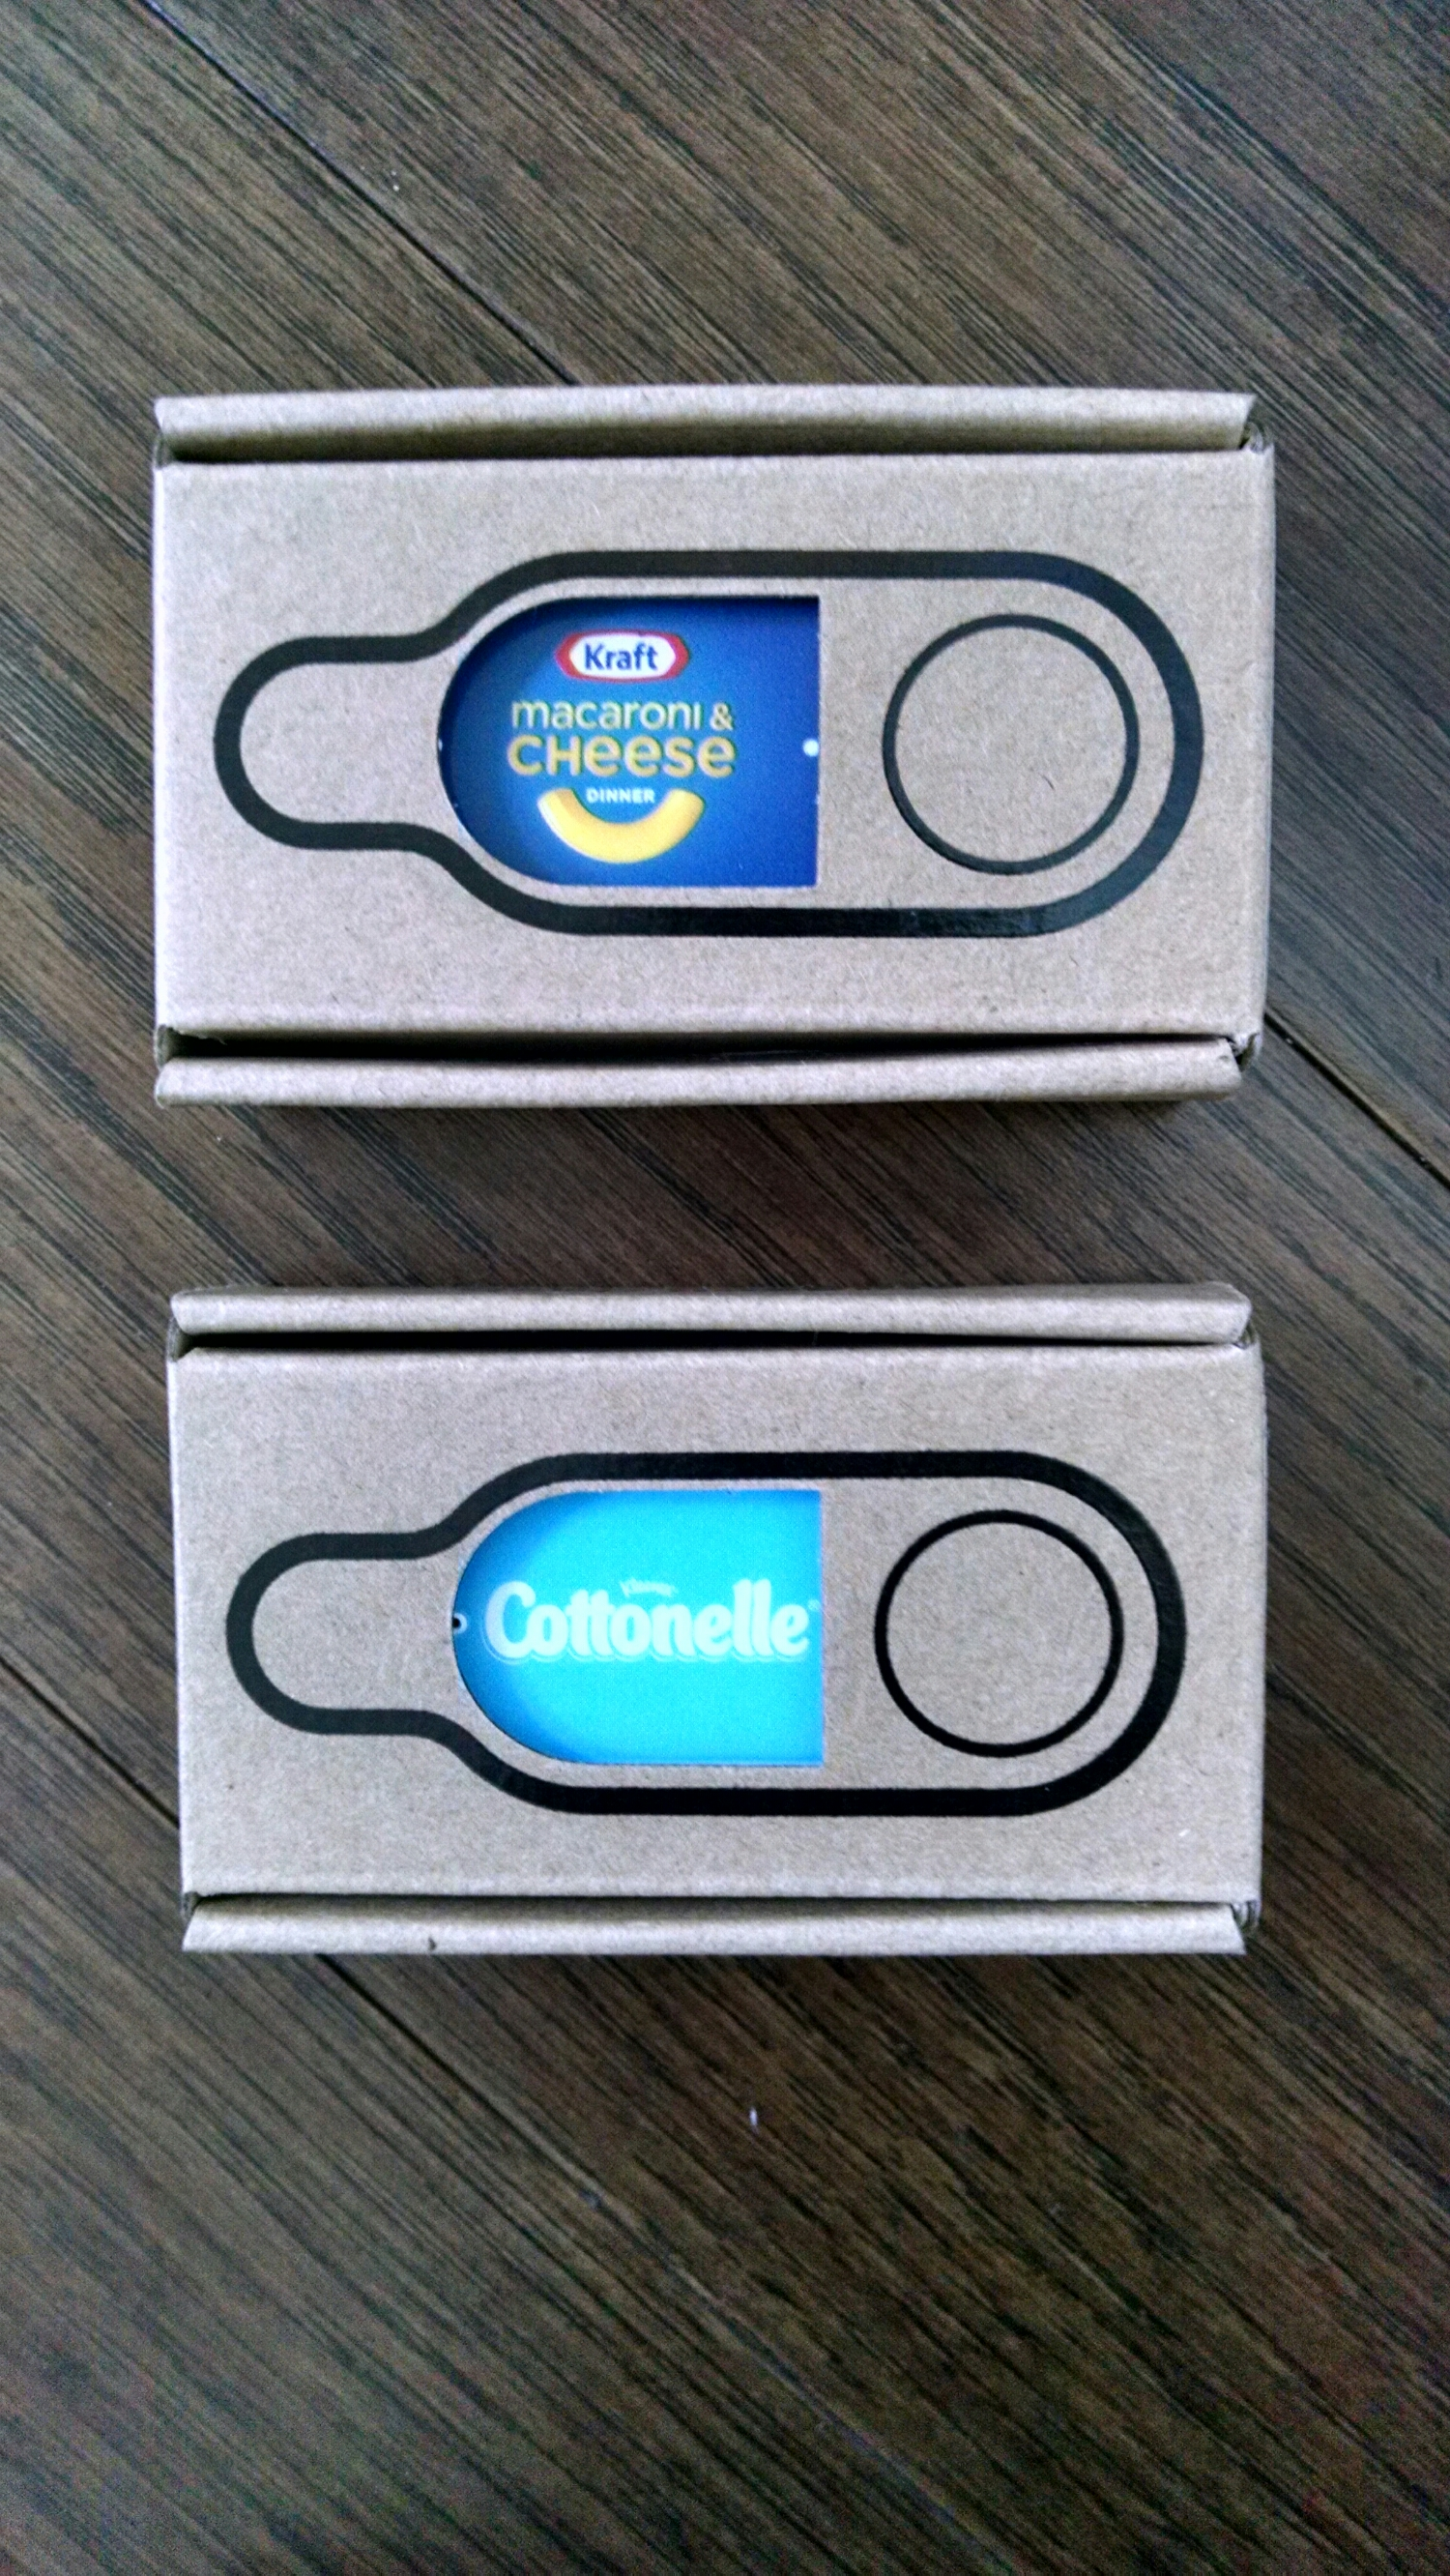 Minimalist packaging for the buttons.